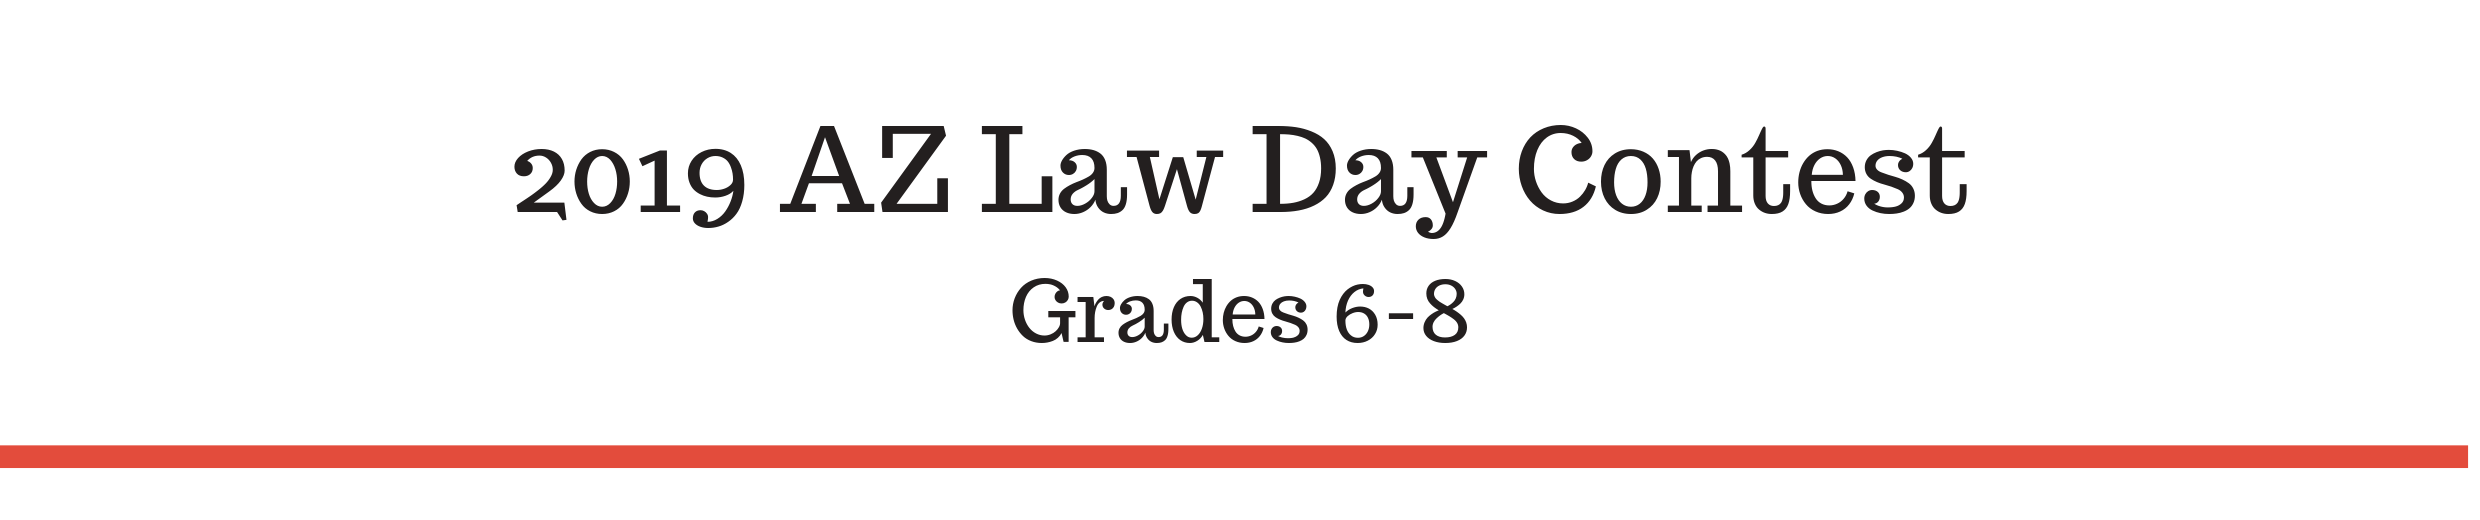 2019 AZ Law Day Contest Grades 6-8